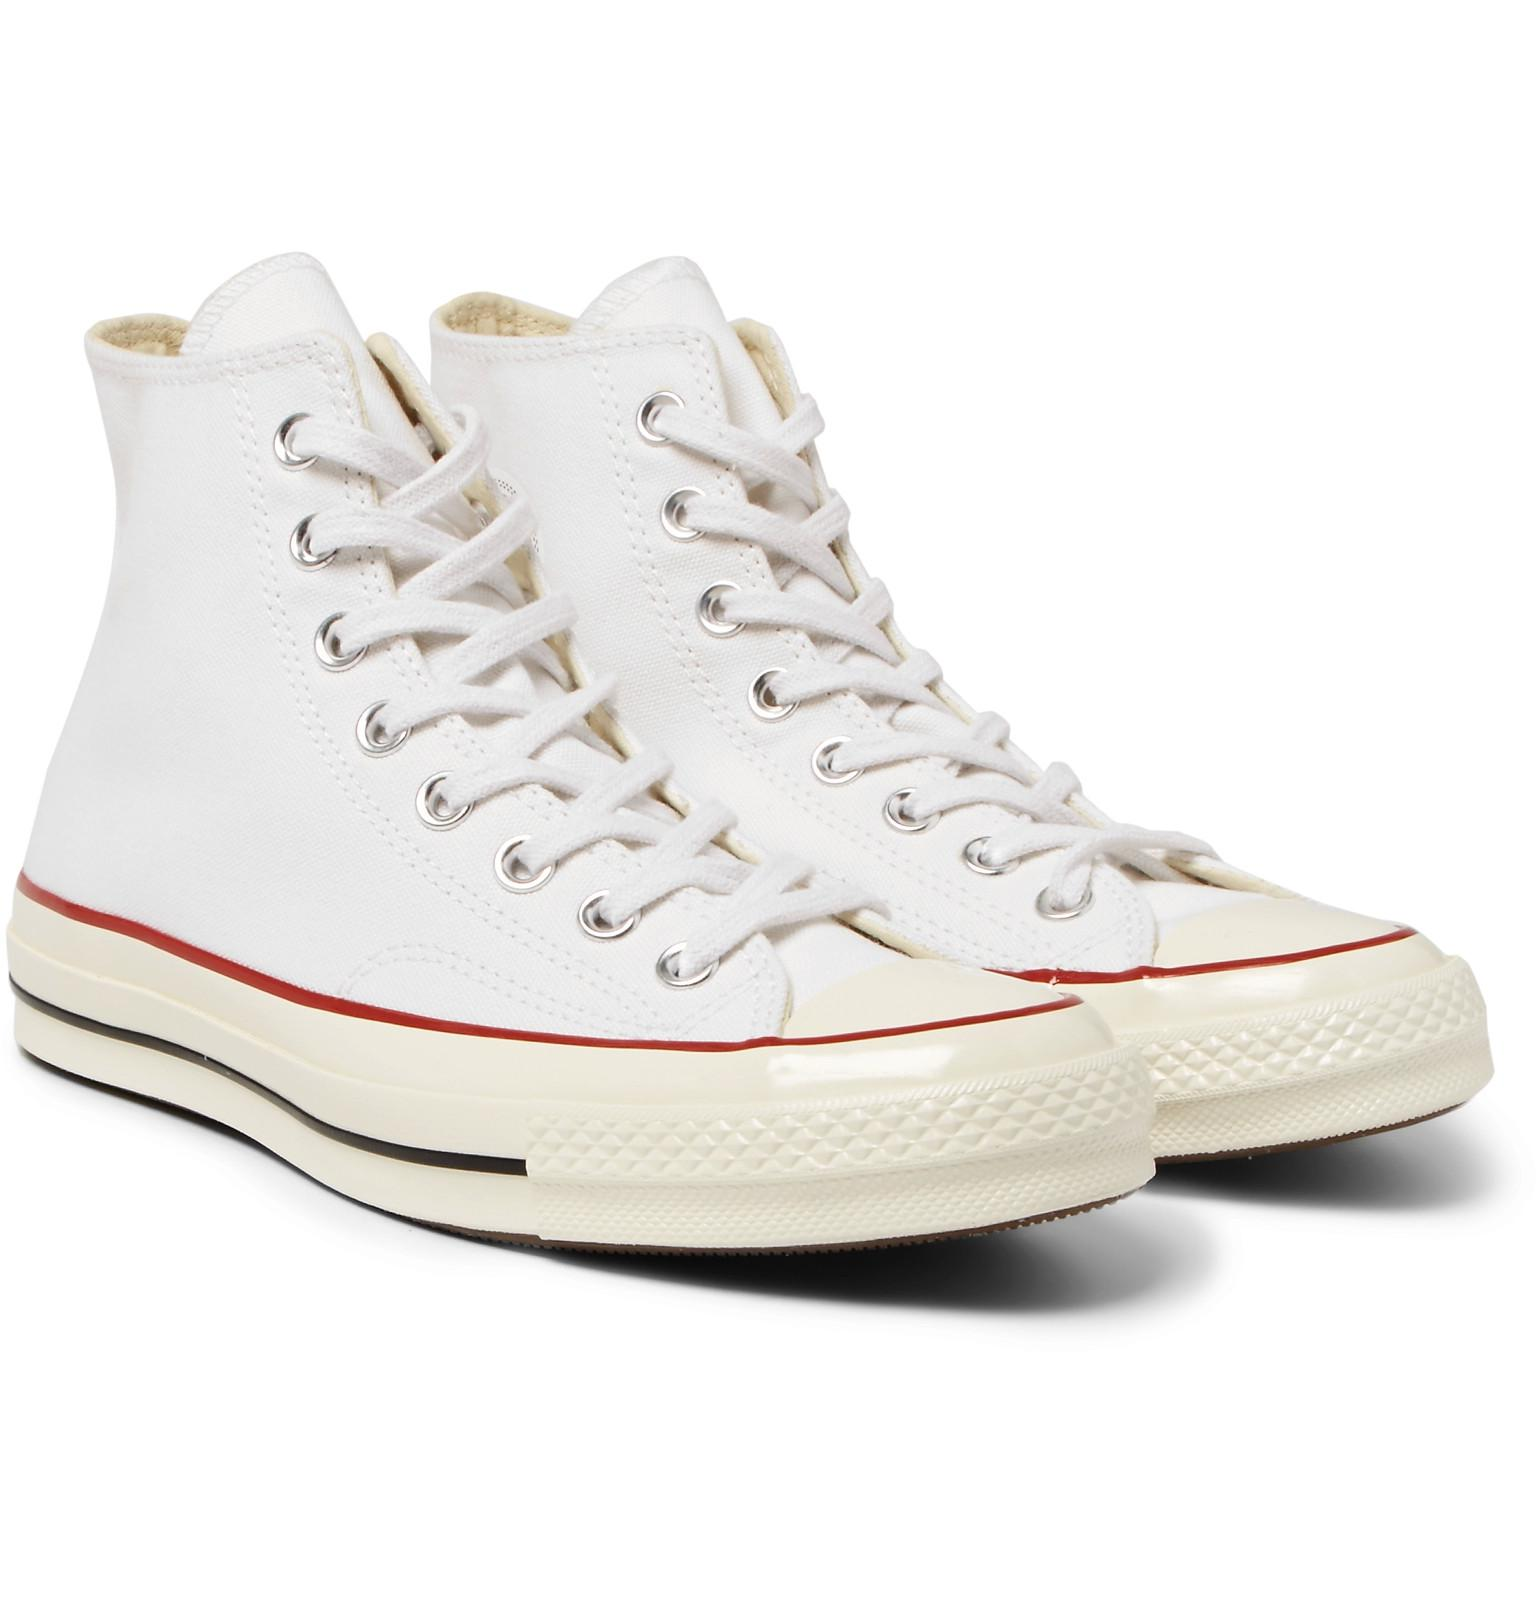 eca19999f7aac2 Converse 1970s Chuck Taylor All Star Canvas High-top Sneakers in ...